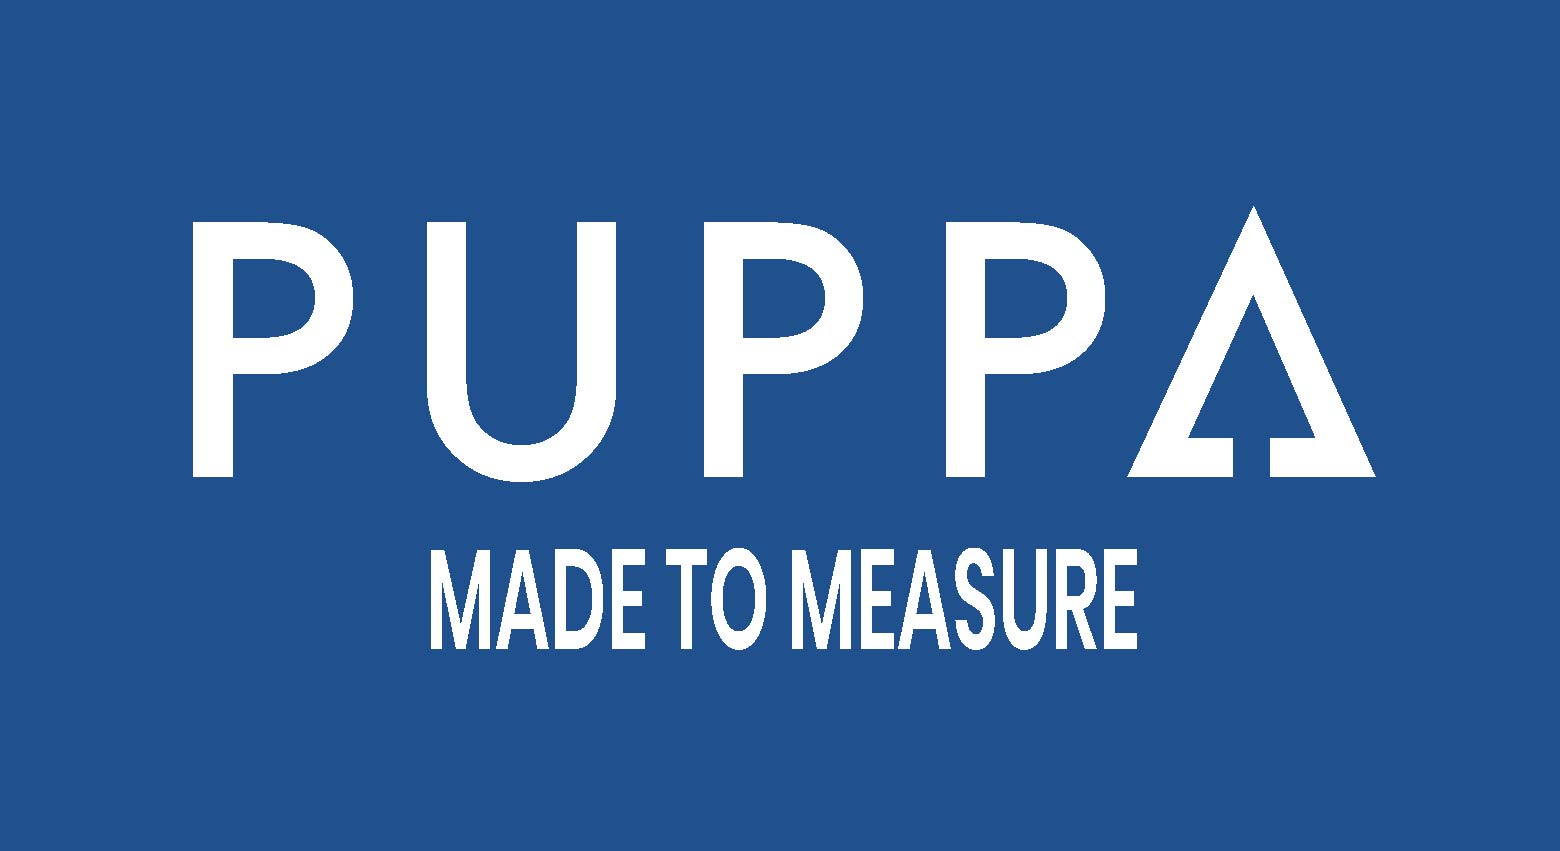 Puppa Design - Made to Measure